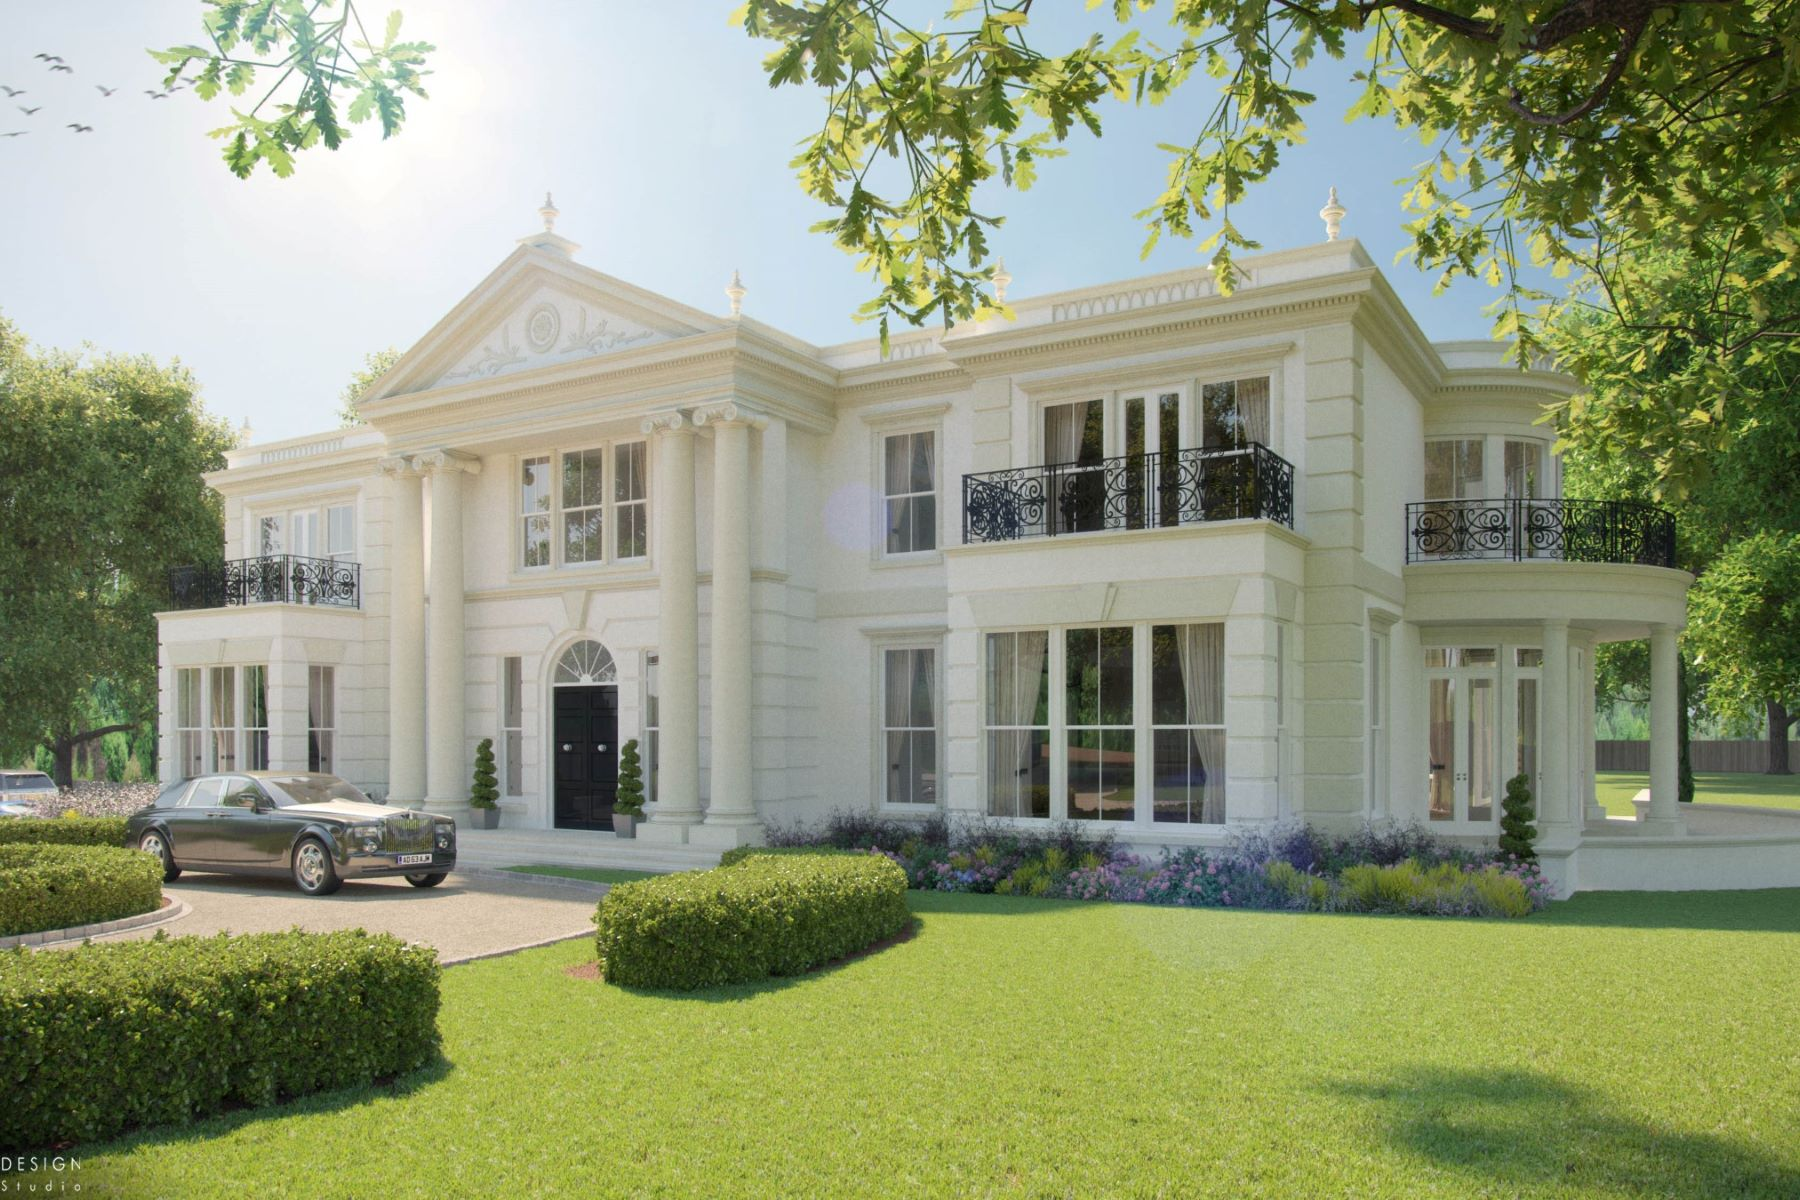 Single Family Homes for Sale at St George's Hill, Weybridge KT13 Weybridge, England KT13 0NP United Kingdom